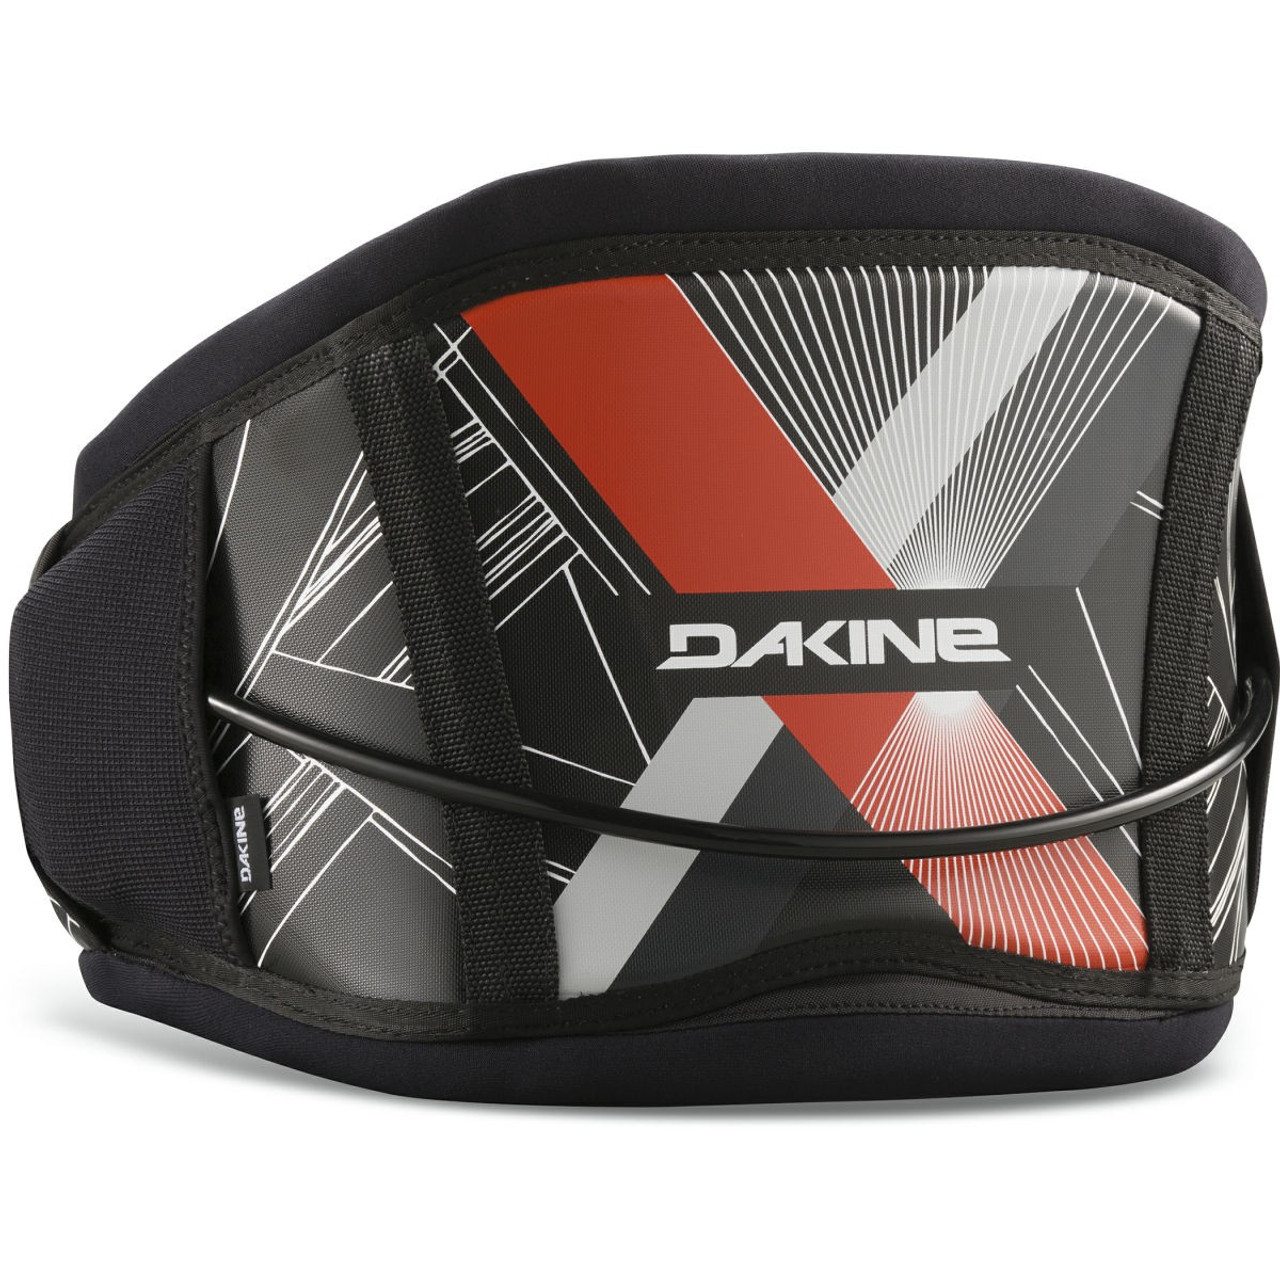 2018 Dakine C-1 Harness w/ Hammerhead - Red